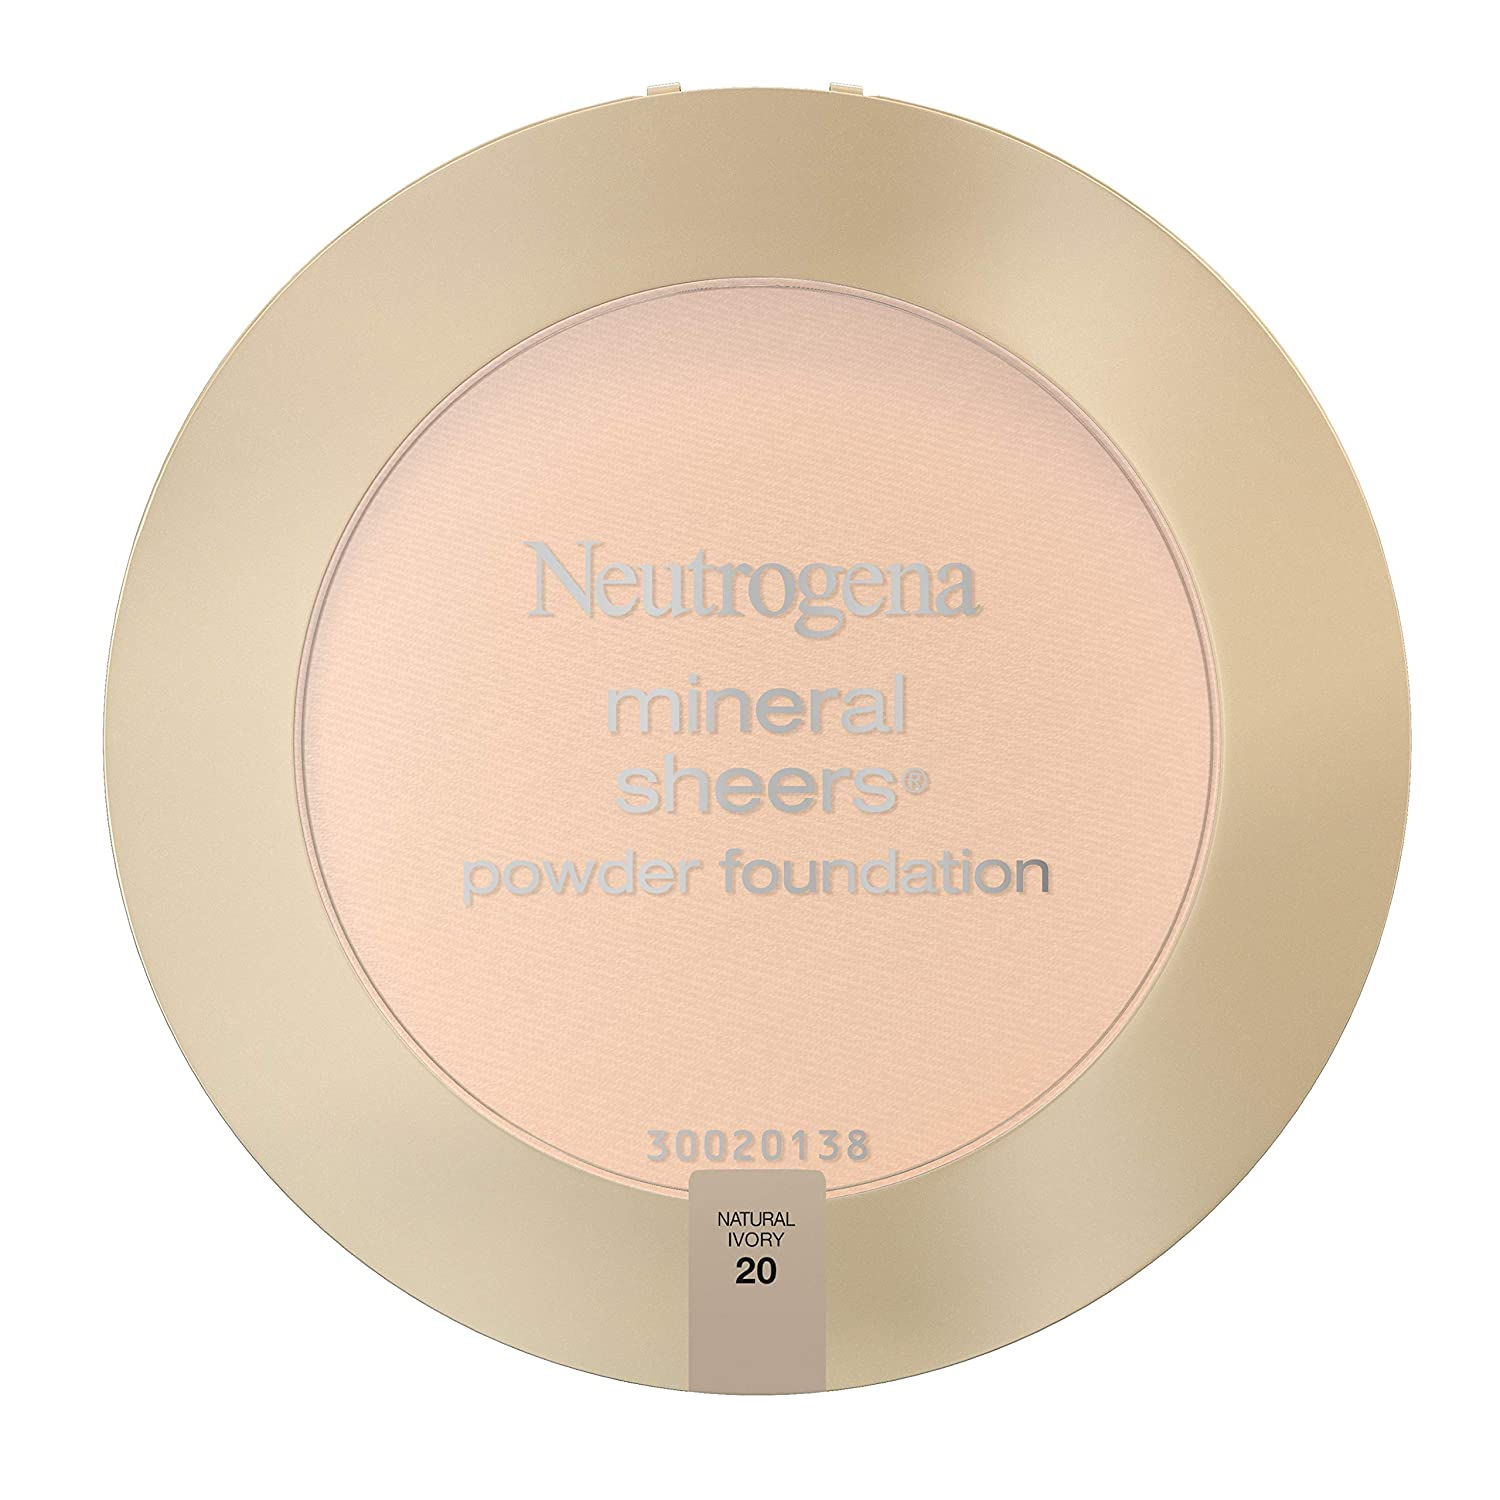 Mineral Sheers Compact Powder Foundation by Neutrogena